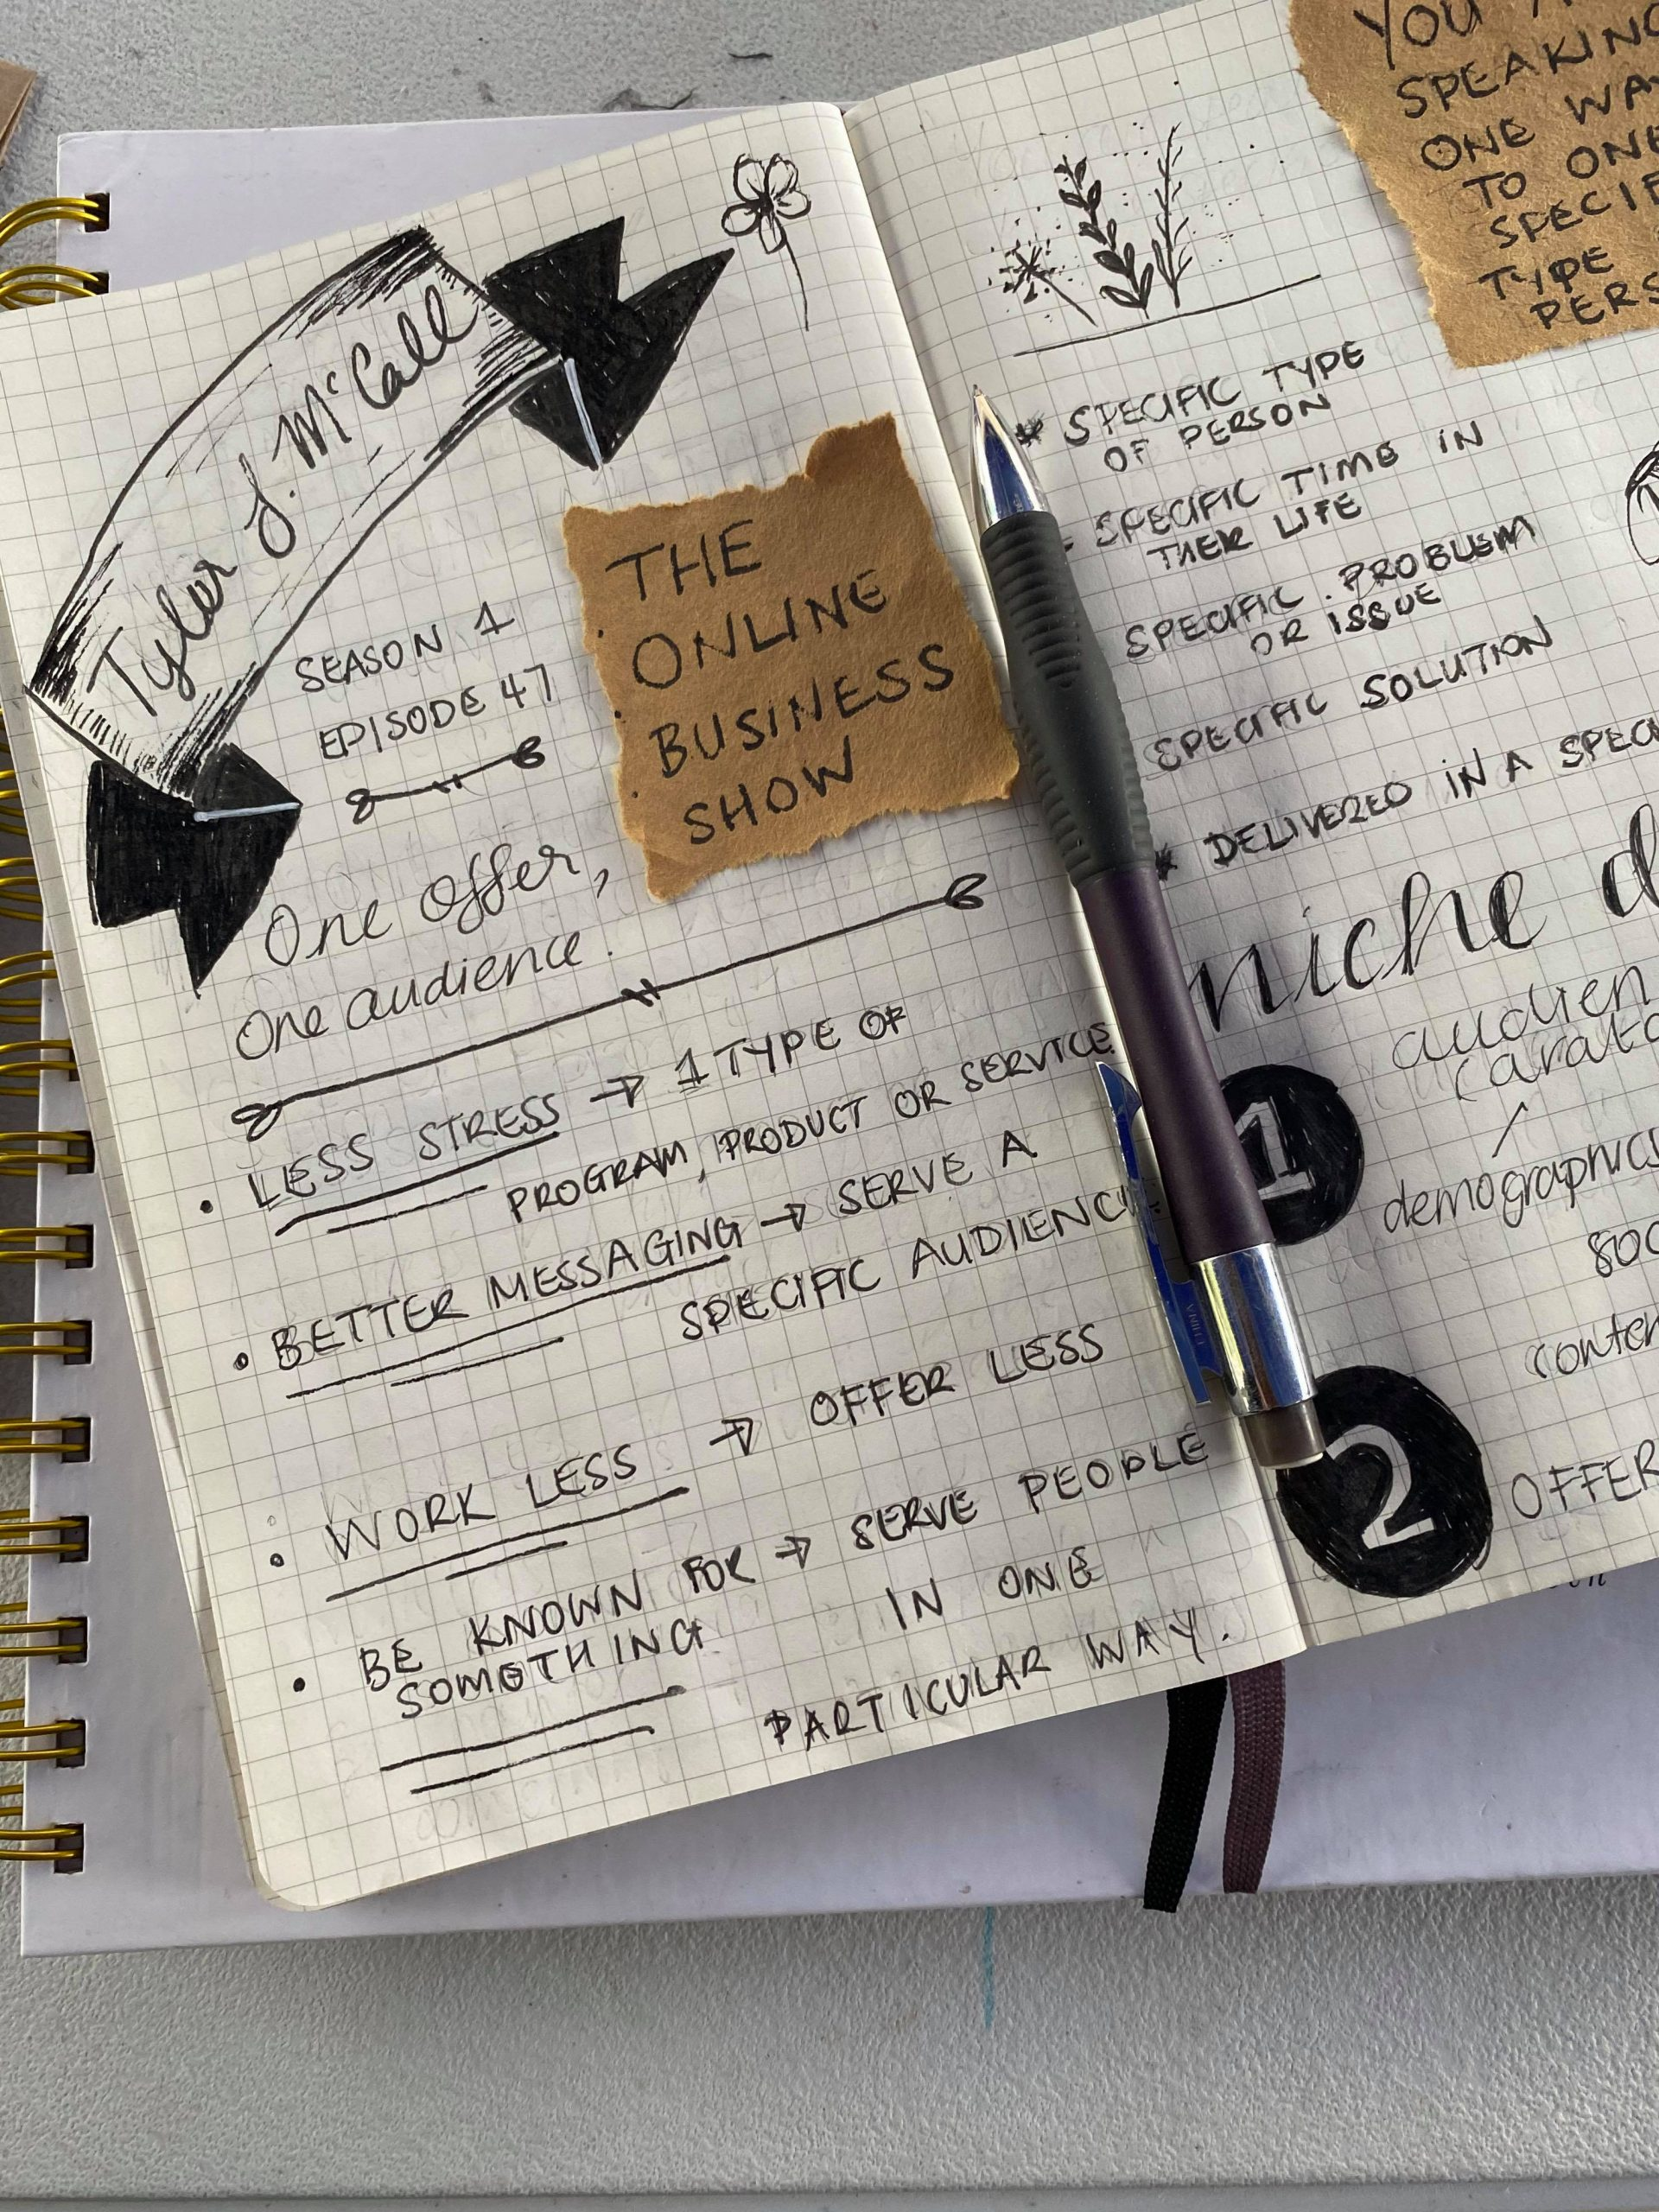 COMMONPLACE BOOK IDEAS